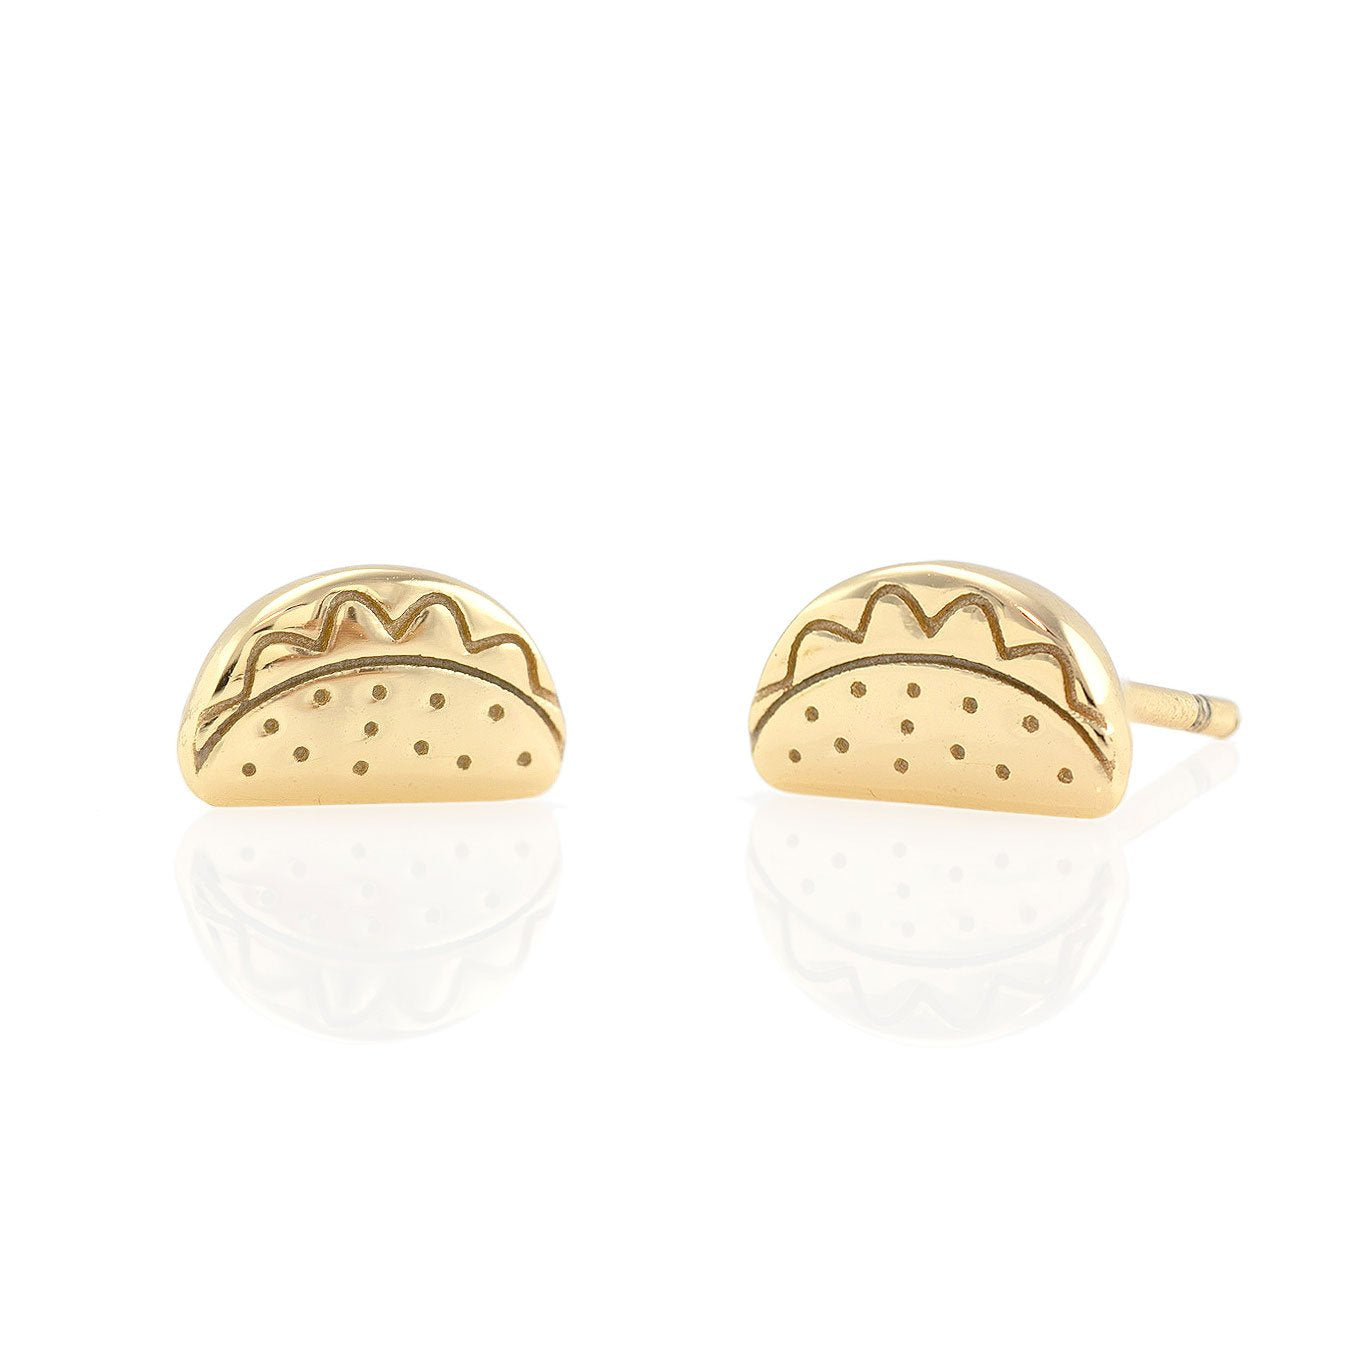 KRIS NATIONS - TACO STUDS IN GOLD